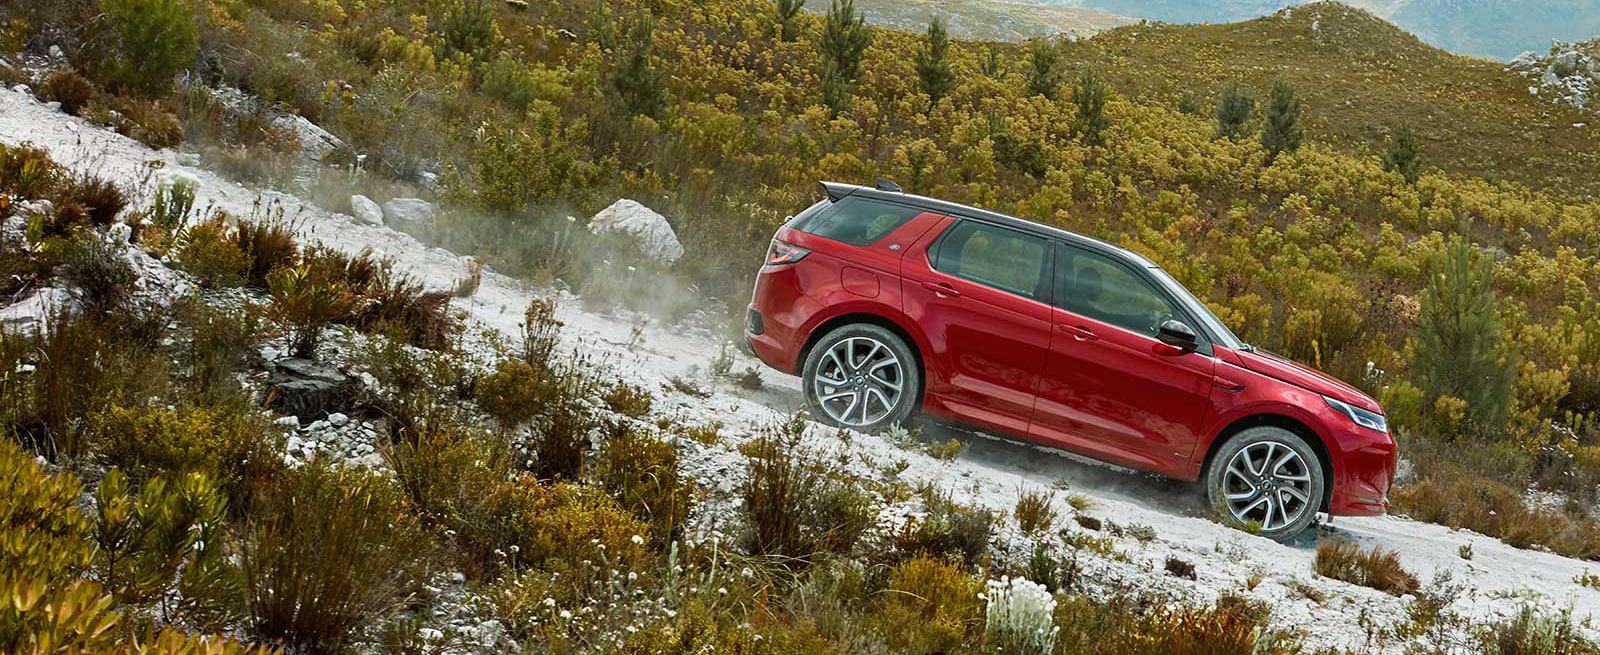 Red Discovery Sport Driving Off-road Down A Hill